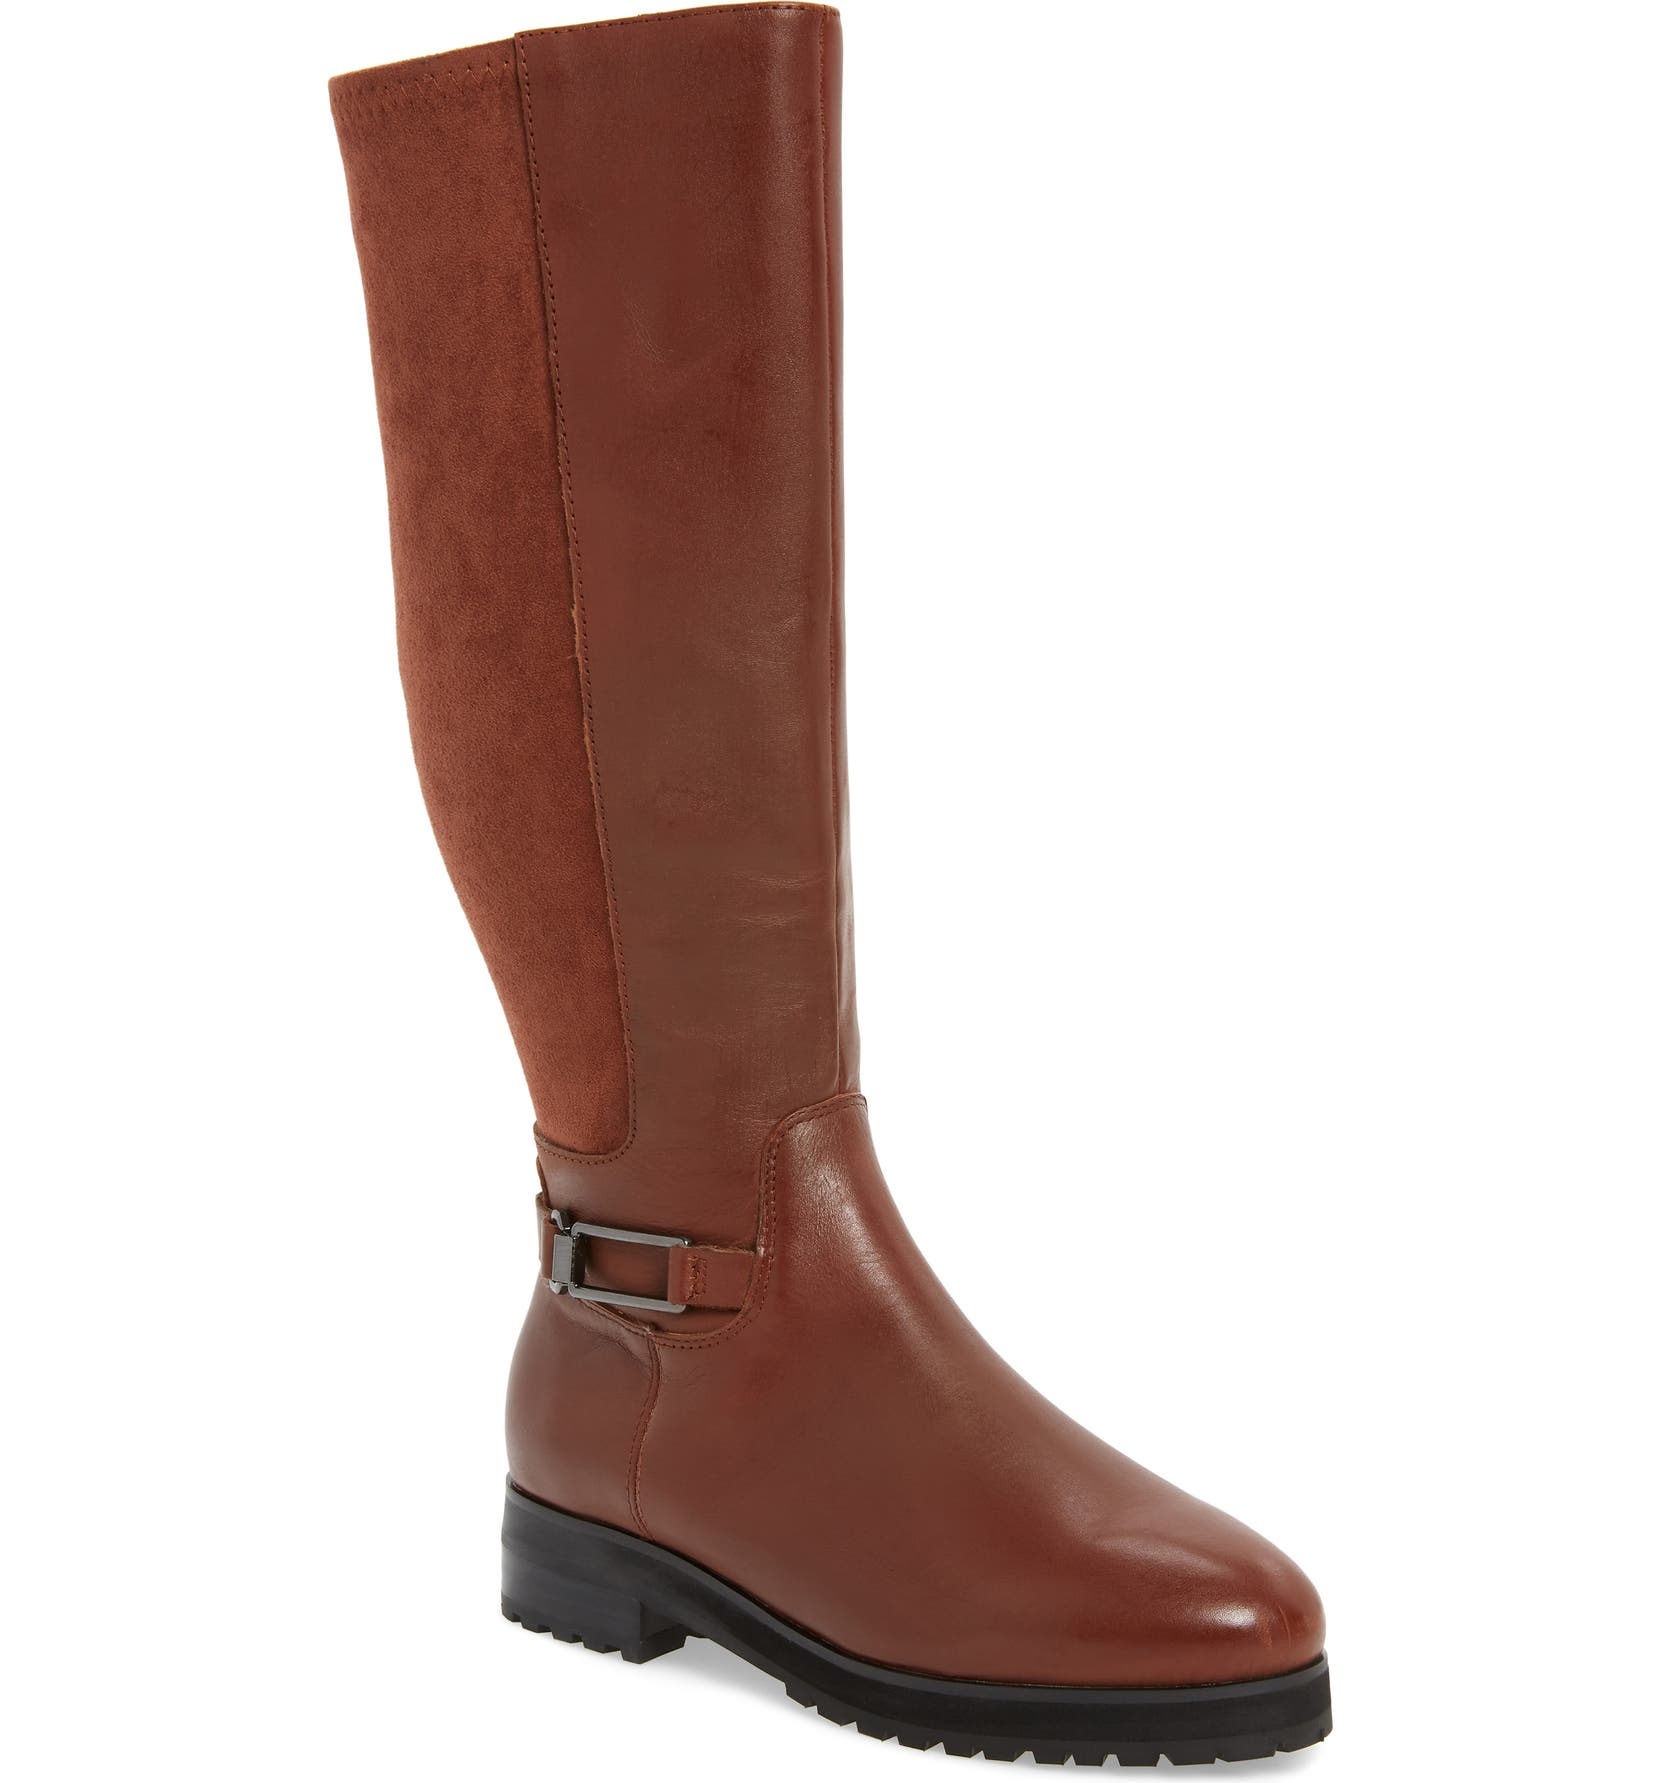 Sudini Frida Waterproof Knee High Boot (Women)  8bbd70ed90